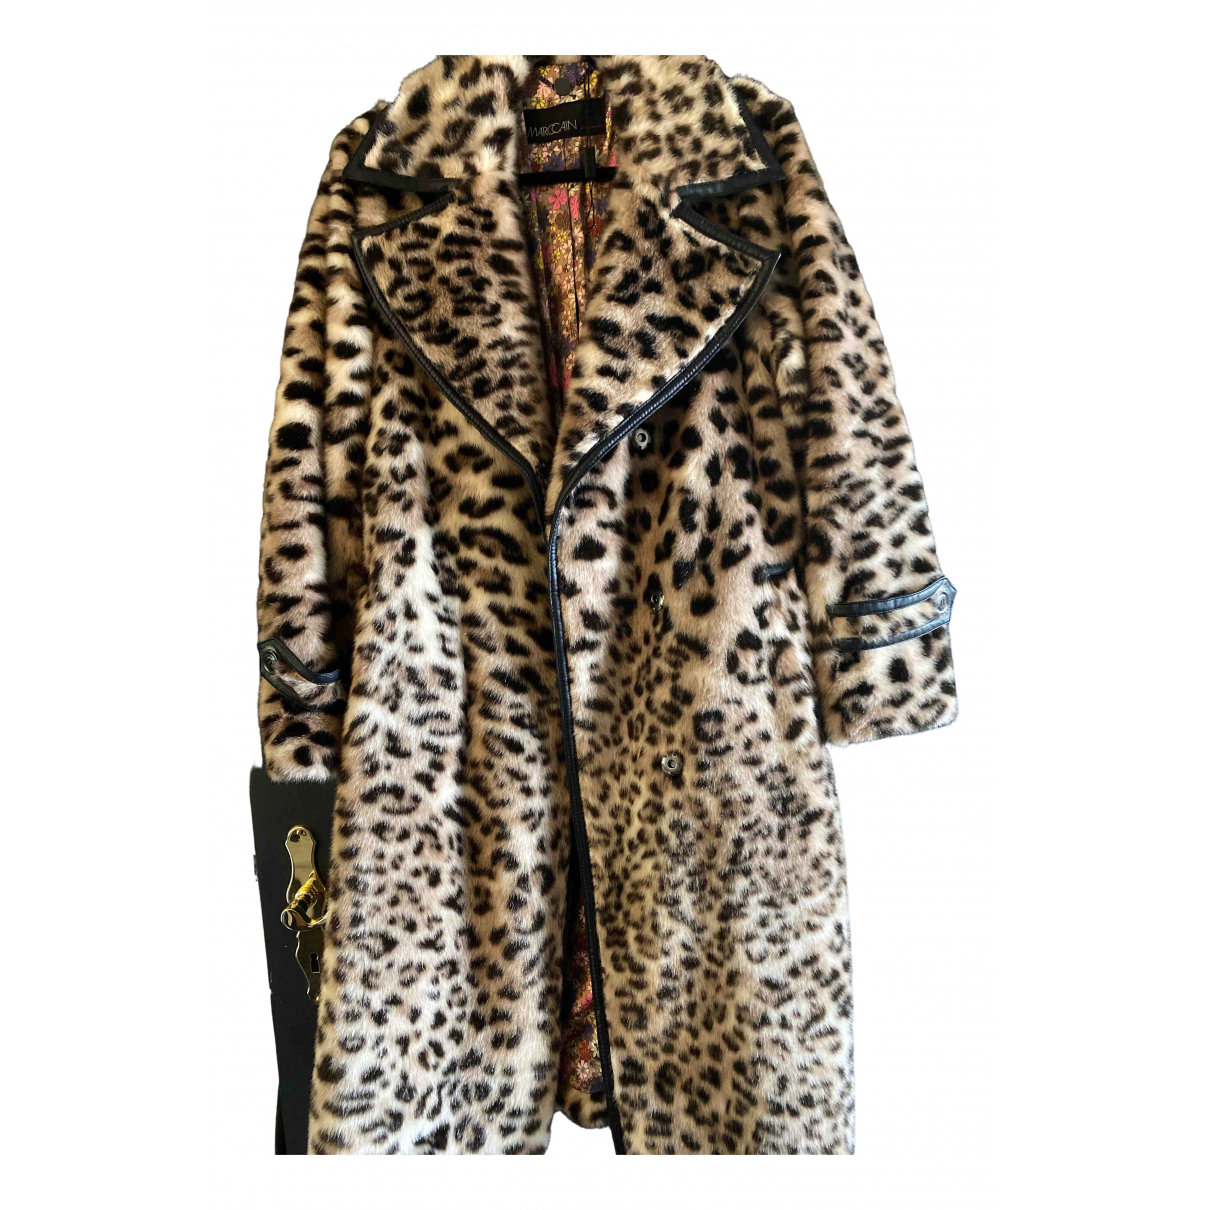 Marc Cain N Multicolour coat for Women 3 0-5